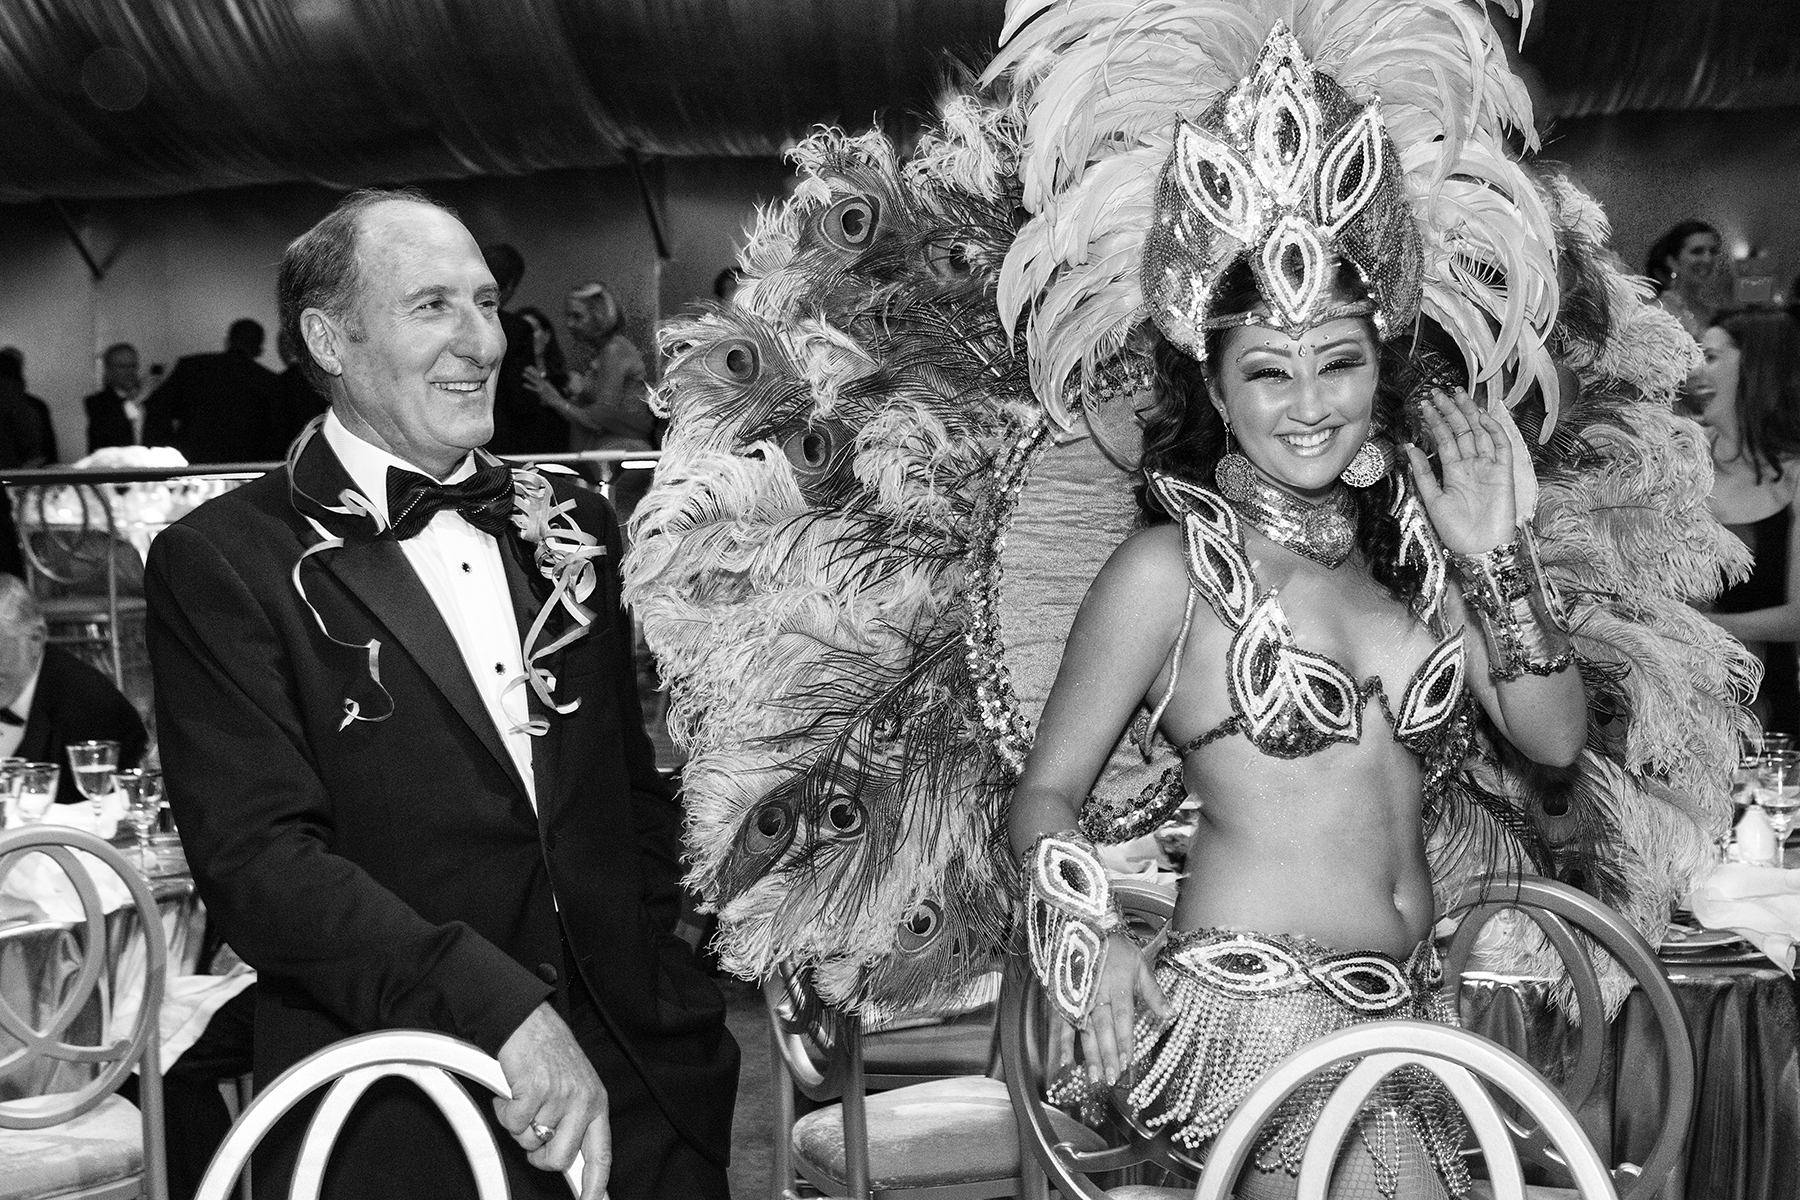 Symphony President John Goldman watches as carnival dancers dance through the patron's tent at the end of dinner during the San Francisco Symphony Opening Night Gala in San Francisco, Calif., on Wednesday, September 7, 2011. This photograph is of a candid moment and was not directed in any way.